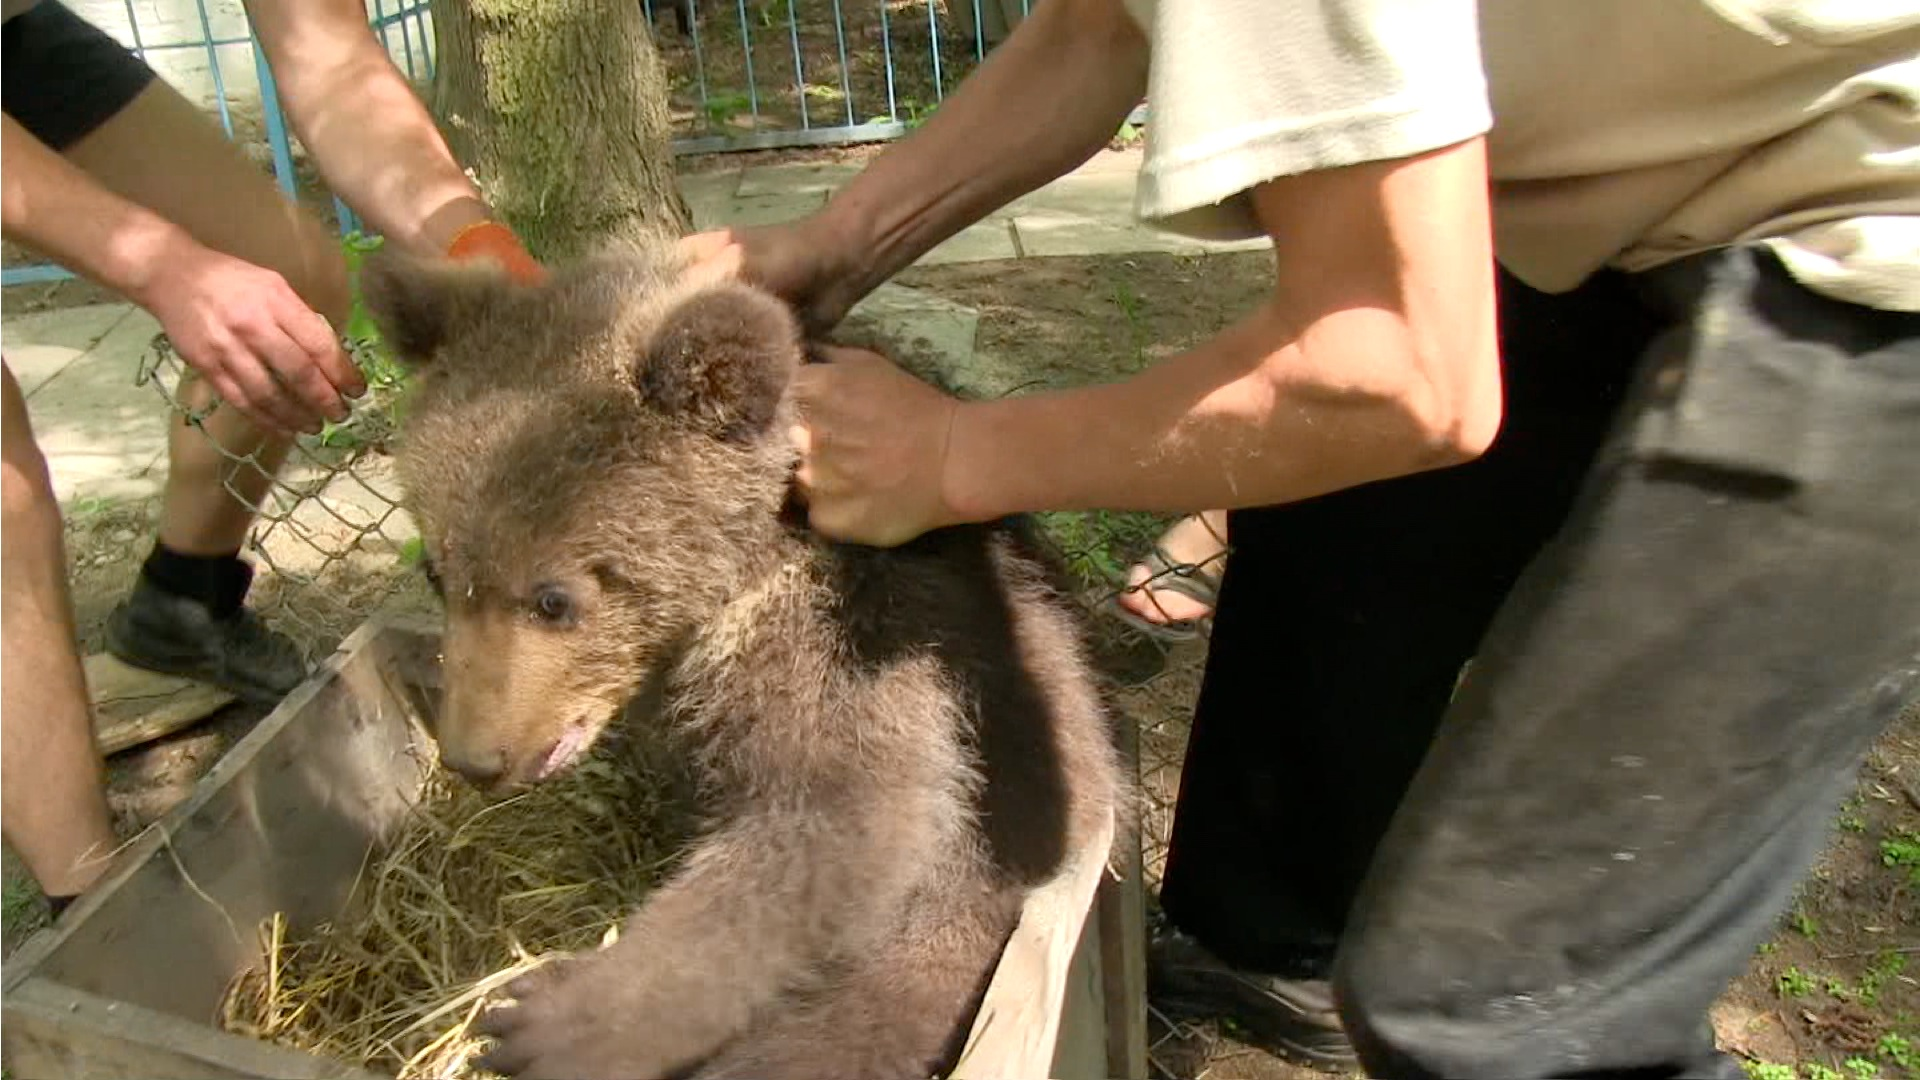 Royal Canin Accused Of Sponsoring Brutal Amp Illegal Bear